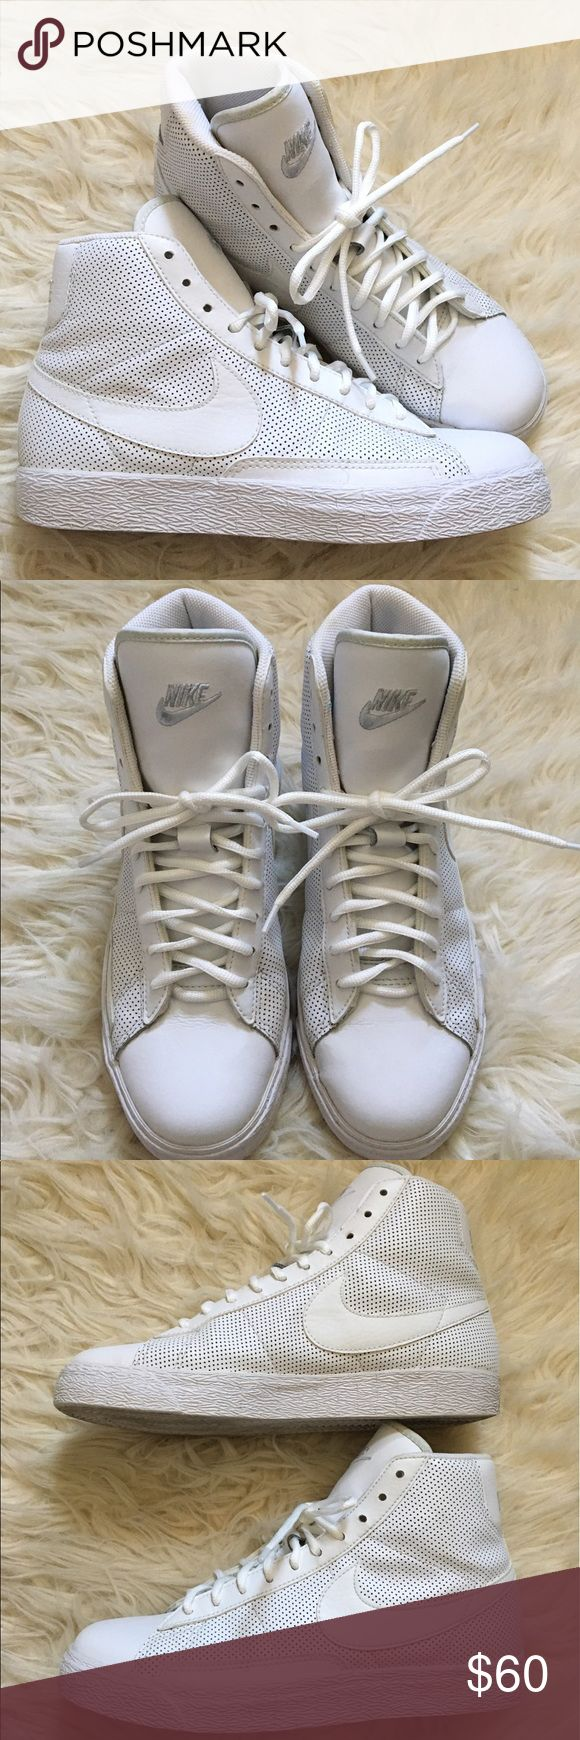 """Perforated White Leather Nike Hi Top Sneakers Perforated White Leather Nike """"Blazer Mid"""" Hi Top Sneakers. Good overall condition! See pictures for reference. Only flaw is some yellowing of letters on the back, slight discoloration on lining of tongue, & faint creases here and there. Size 6.5 youth, but I wear a women's 8 & these fit perfectly. The shoelaces are replacements and do not lace all the way up, I like them showing the tongue logo however. You can buy longer ones or leave as is…"""